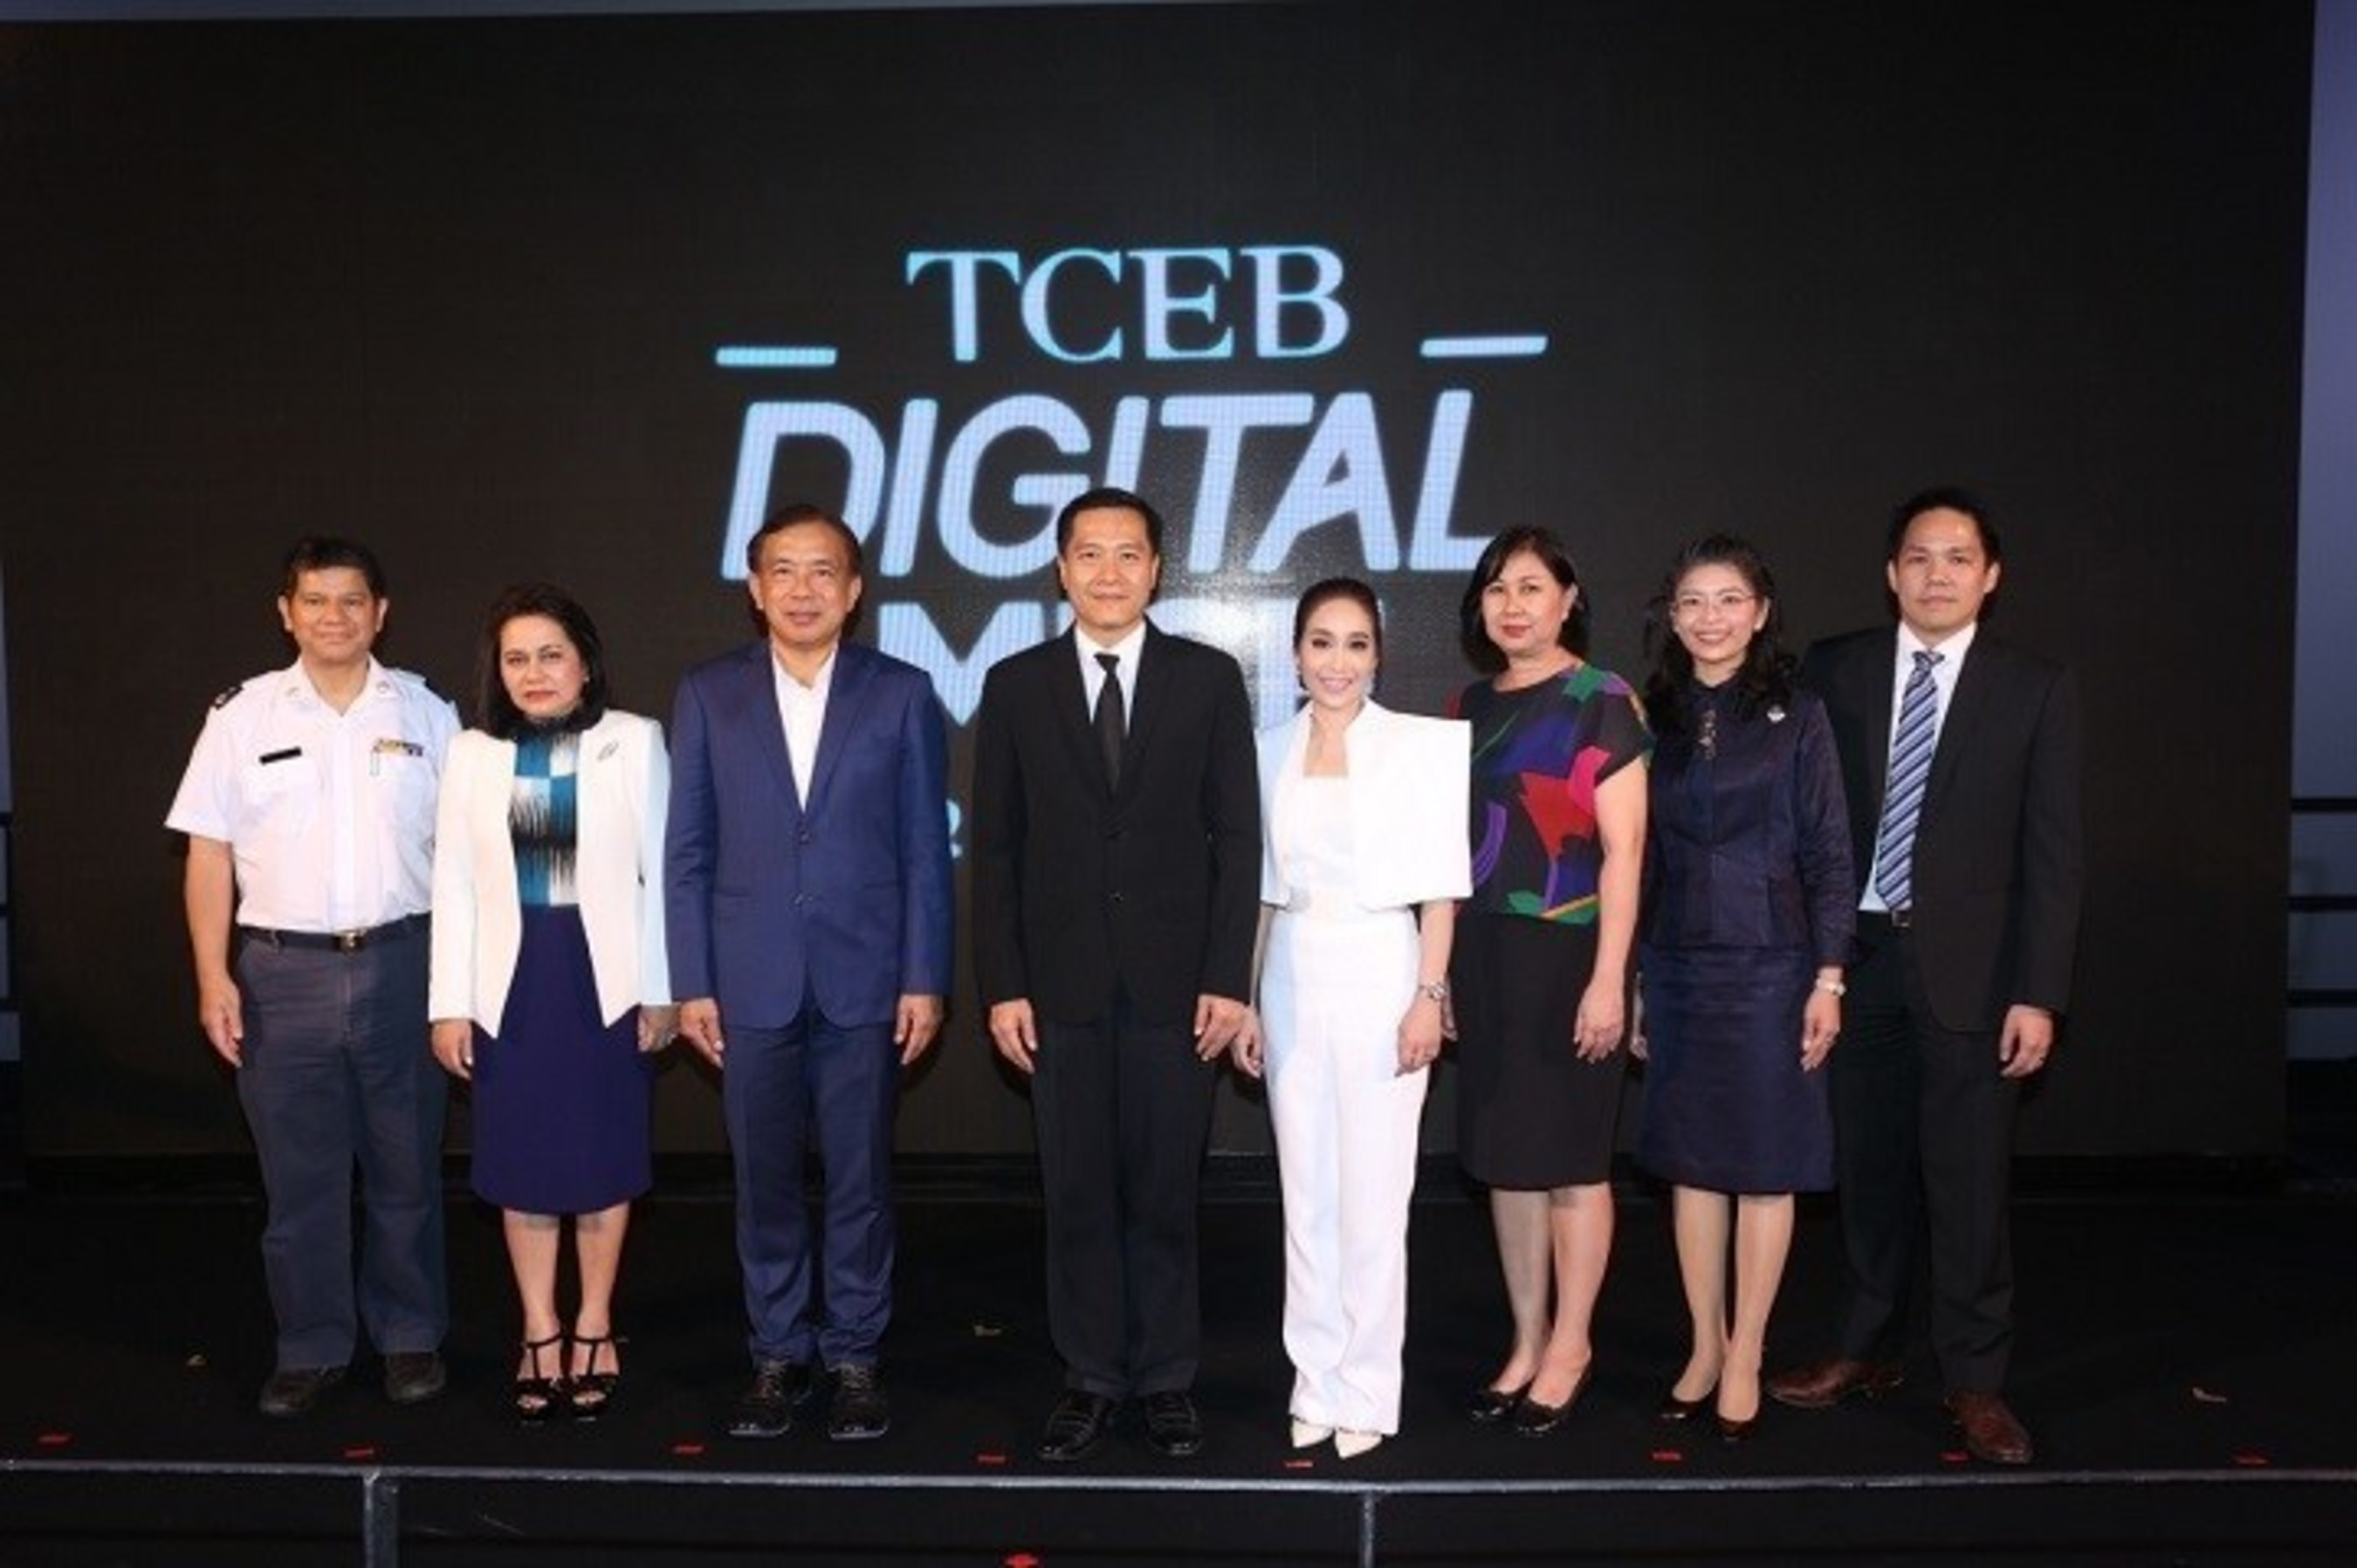 Spice Up Your Business Agenda 2016, by TCEB and collaboration with the Tourism Authority of Thailand, Thai Airways International PCL, the Ministry of Commerce's Department of International Trade Promotion, Thai Smile Airways Limited, and Visa International (Thailand).